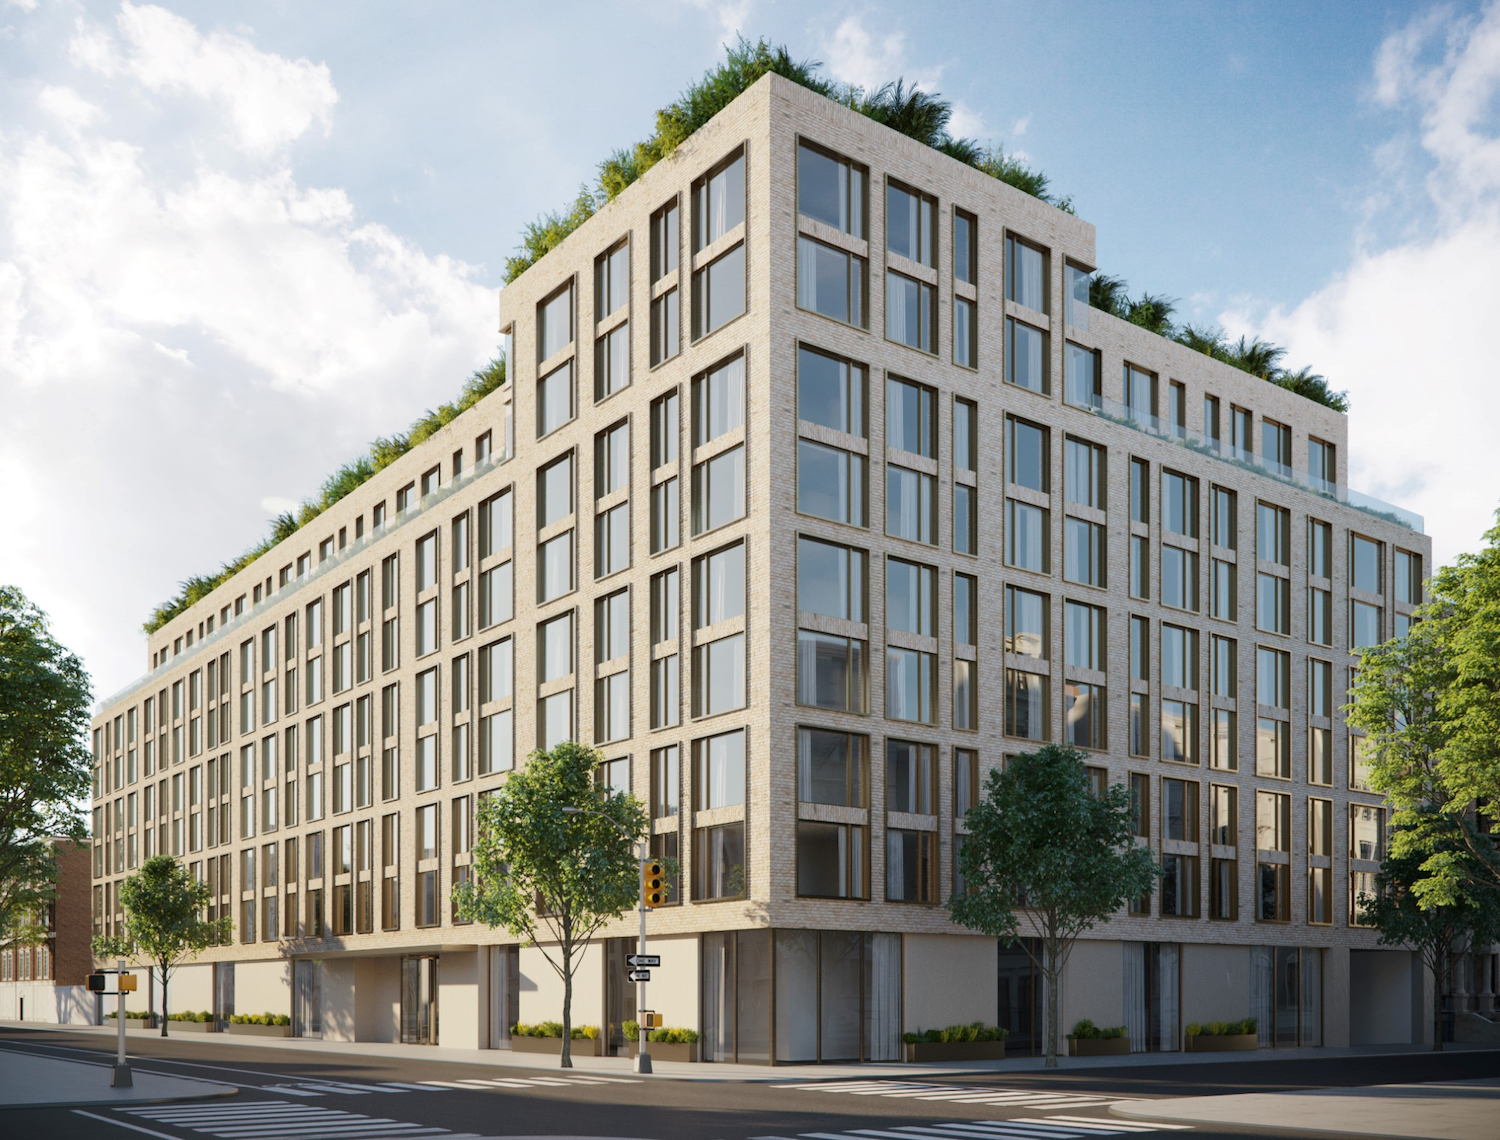 Rendering of 153-10 88th Avenue in Jamaica, Queens. Courtesy of Brett Fisher/Depict